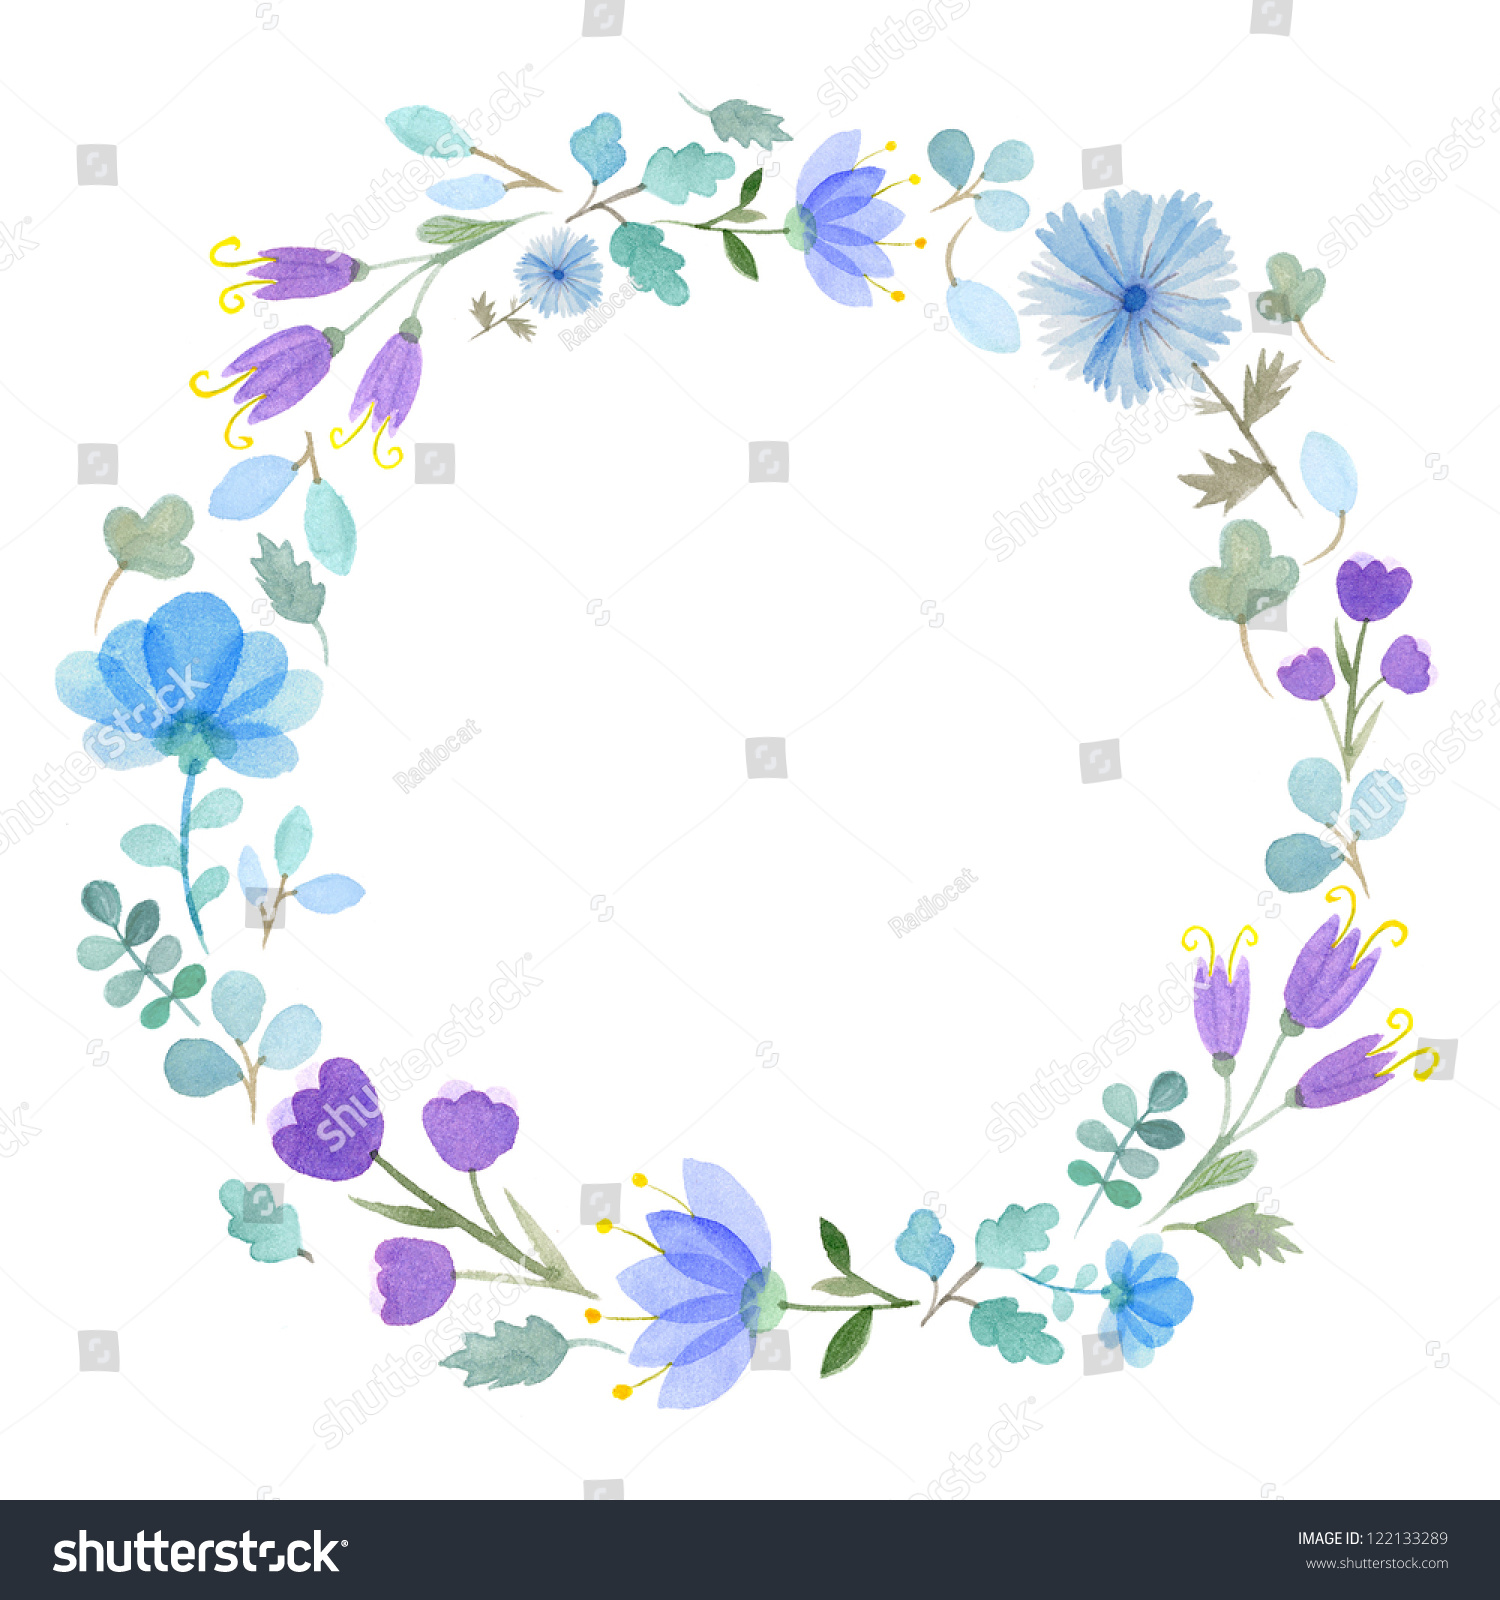 Flowers Free Vector Art  13660 Free Downloads  Vecteezy